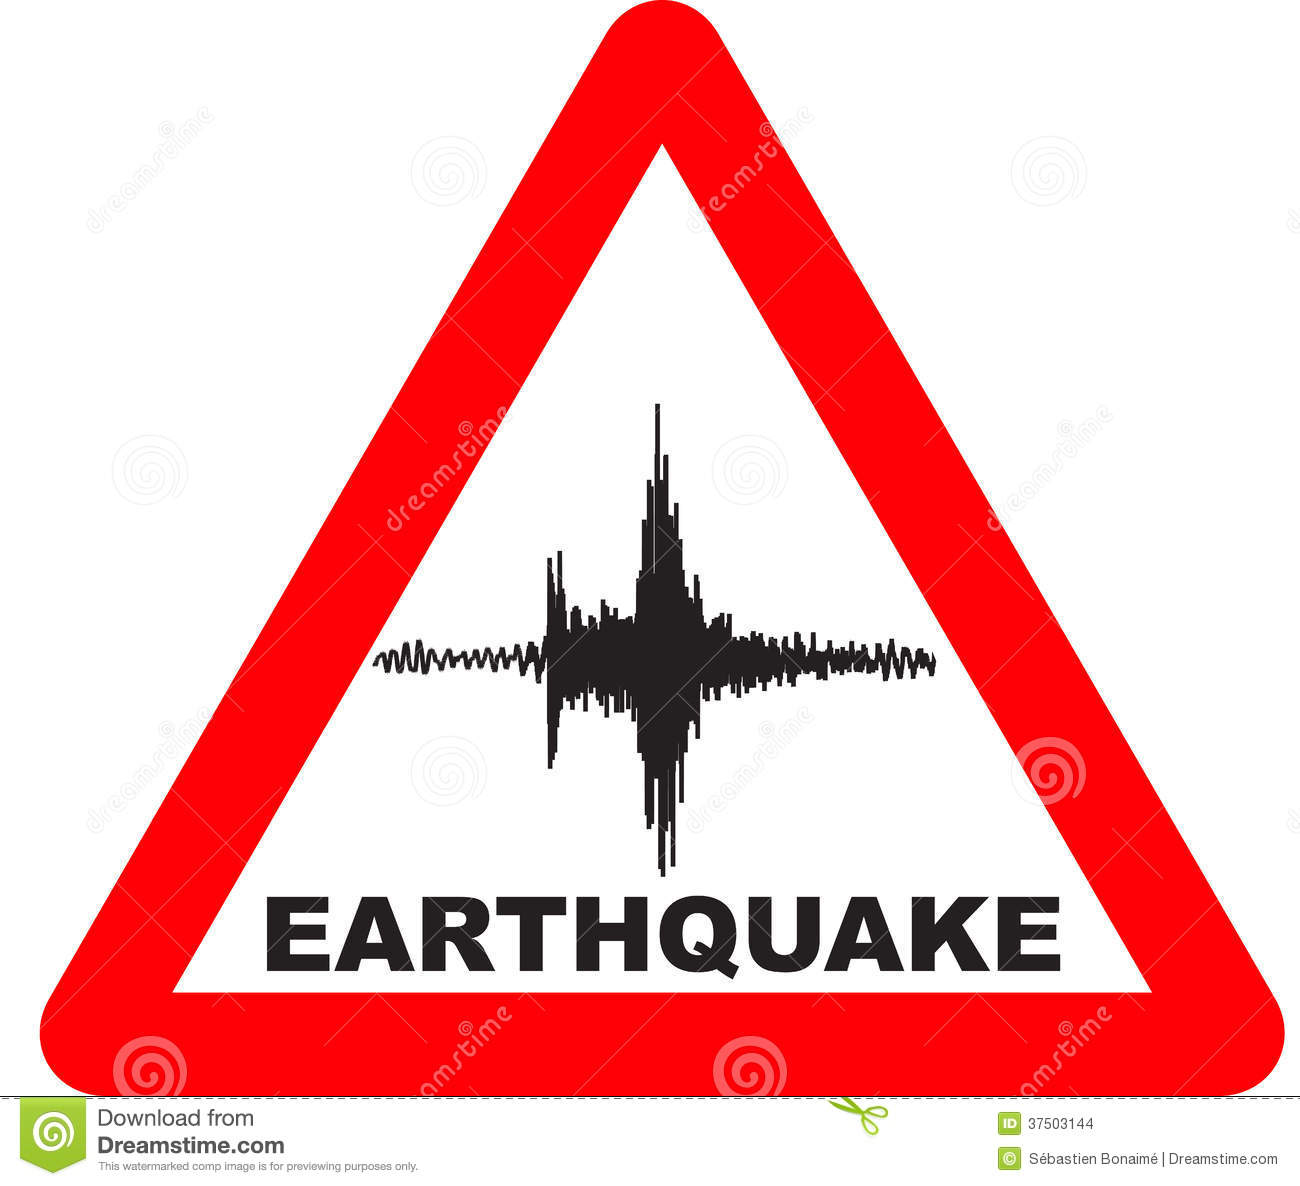 Stock Images Earthquake Warning Sign Red Triangle Image37503144 on nuclear text message